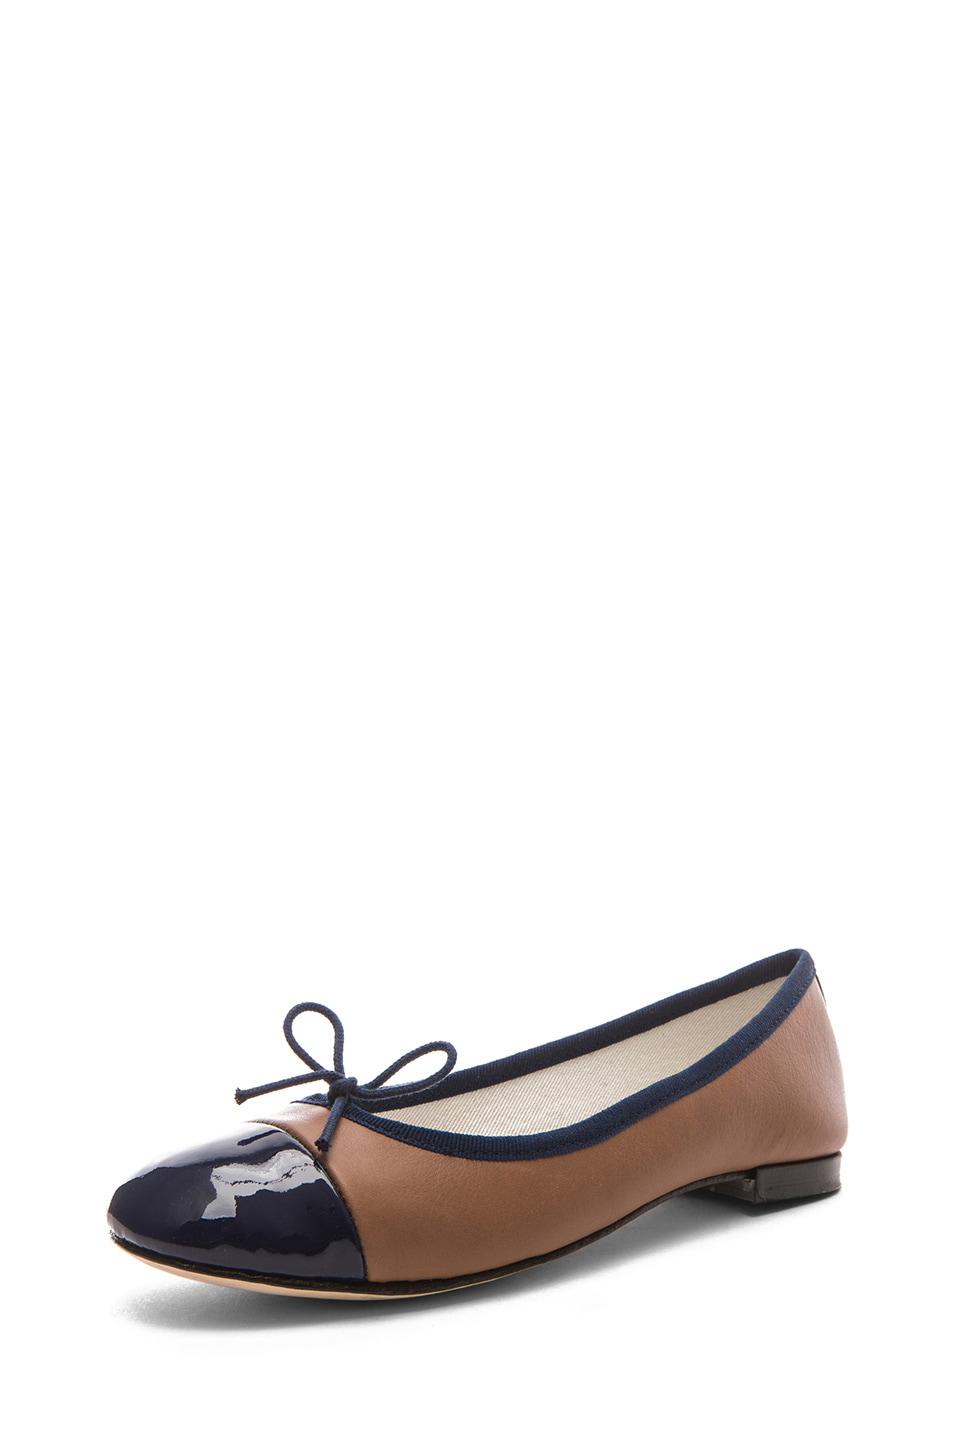 Image 2 of Repetto Leather & Patent Flat in Alpaca & Deep Sea Blue